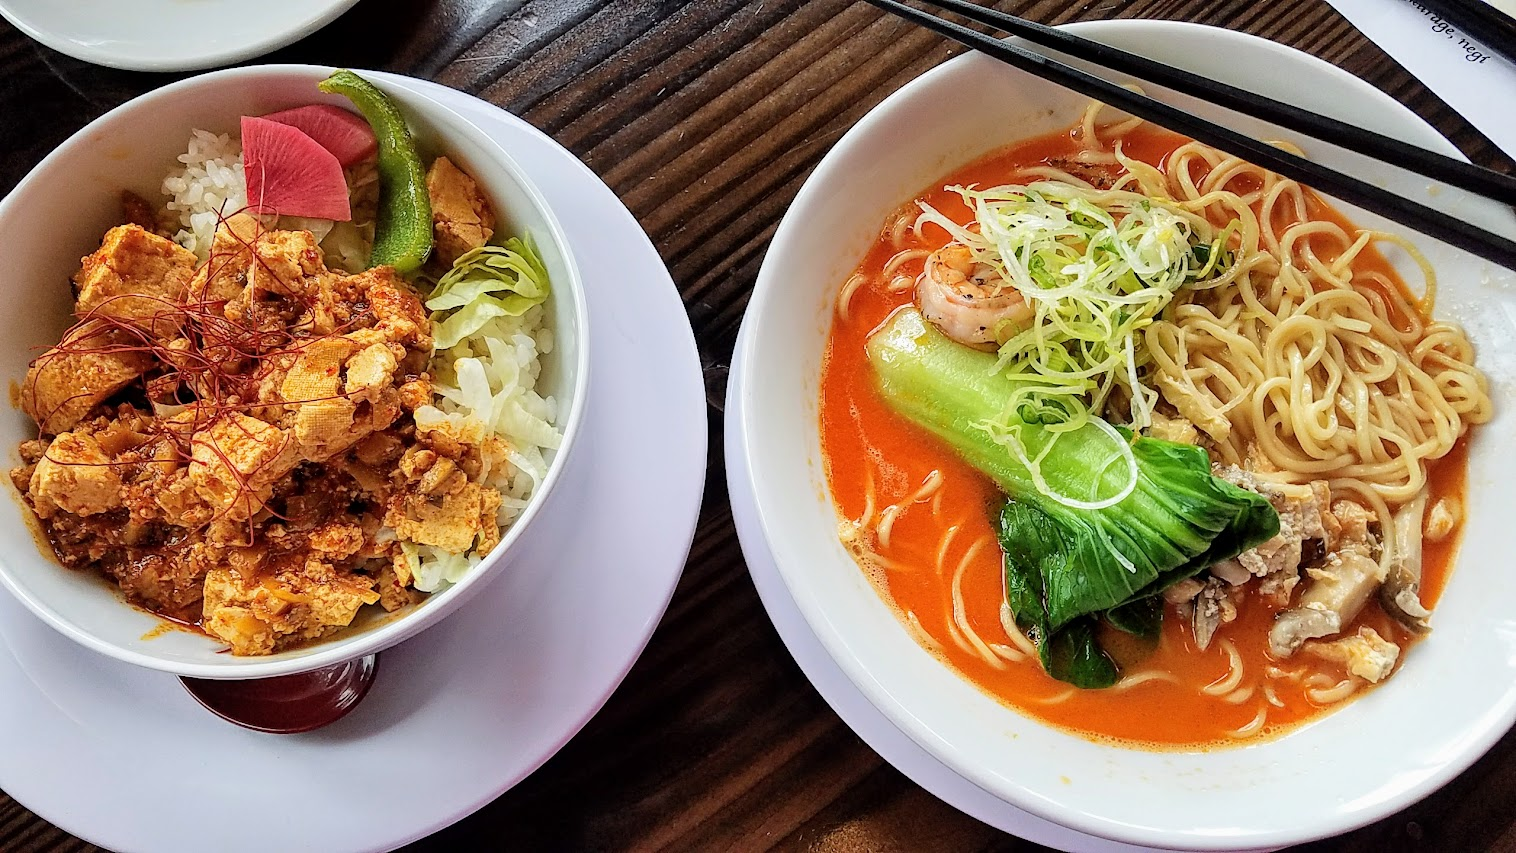 Marukin vegan mapo tofu over rice, and the only once a week, 30 bowls limited edition Ebi Ramen, a Rich Tiger Shrimp and chicken based broth with sea salt topped with tiger shrimp, bok choy, mushroom age-tofu mix, kikurage, and negi